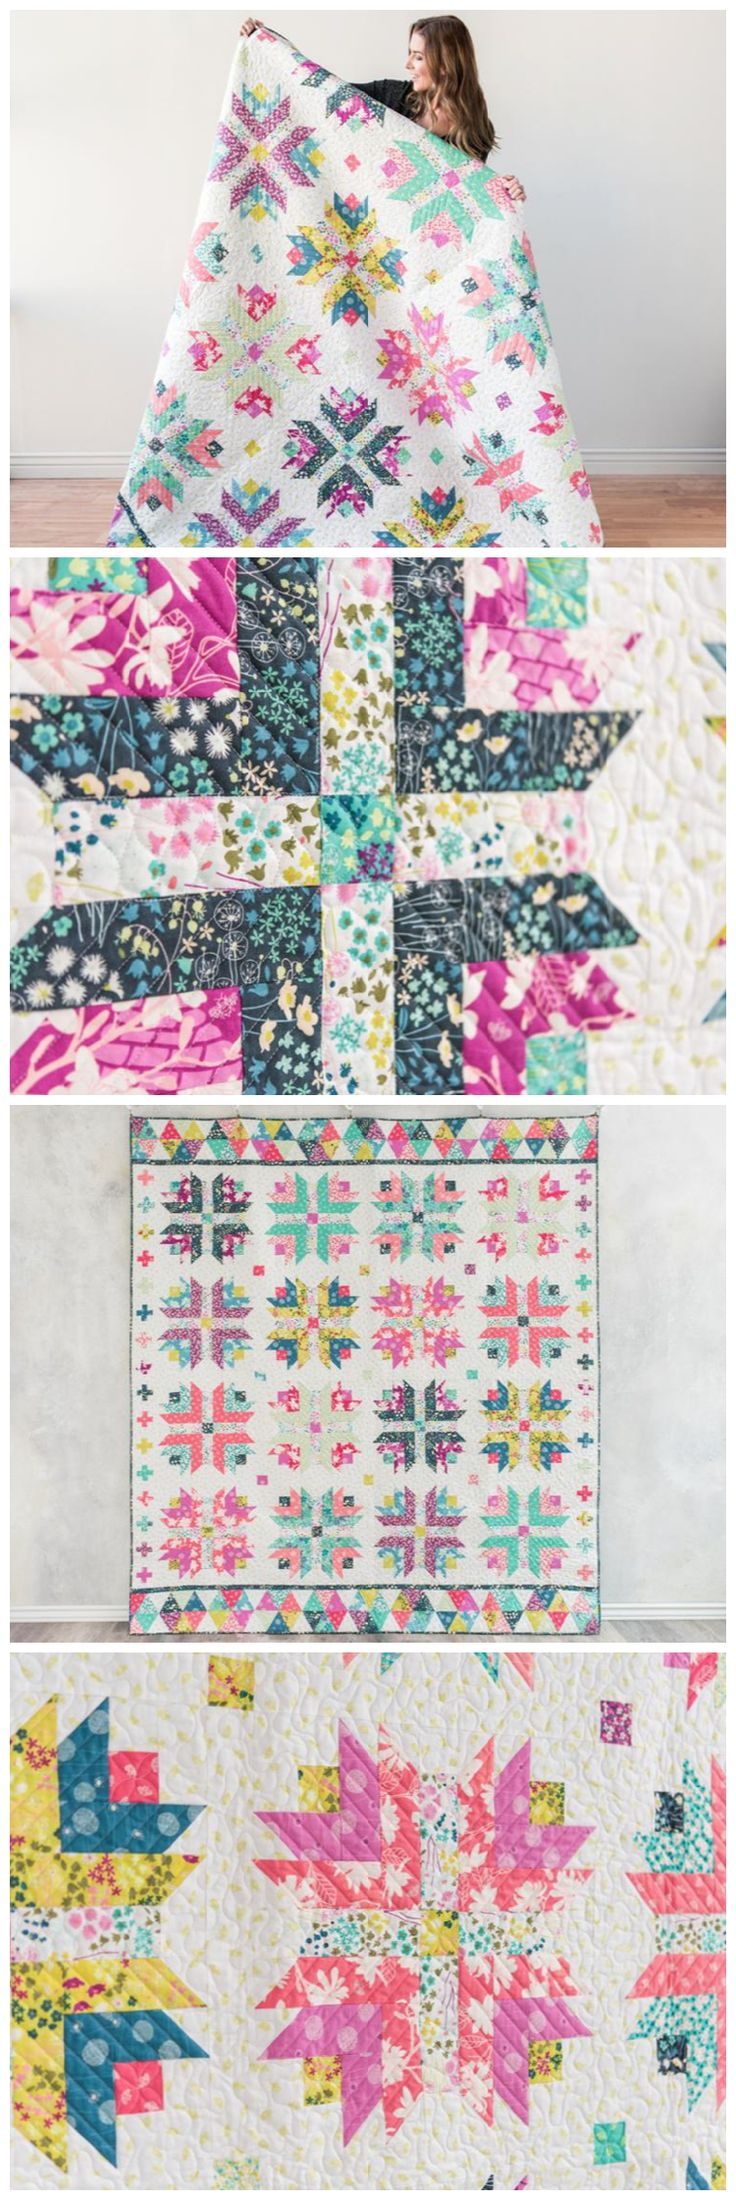 Best 25+ Quilt patterns ideas on Pinterest | Baby quilt patterns, Quilting  and Quilt size charts